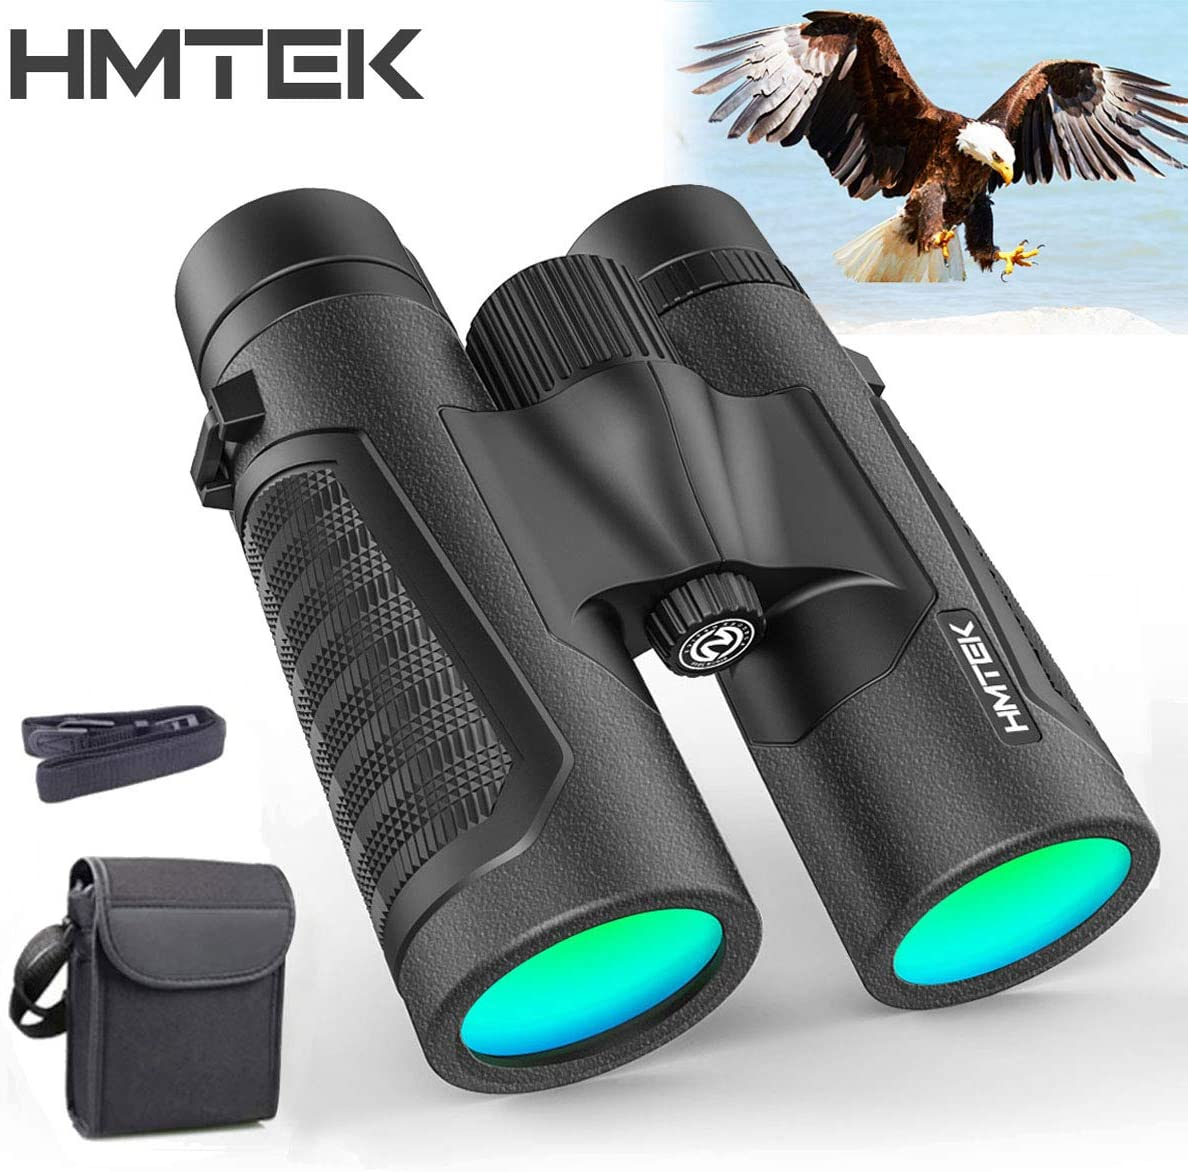 Hmtek 12×42 Binoculars for Adults – 18mm Large View Eyepiece – 16.5mm Super Bright BAK4 Prism FMC Lens – HD Professional Binoculars with Carrying Bag for Birds Watching Hunting Stargazing Concert